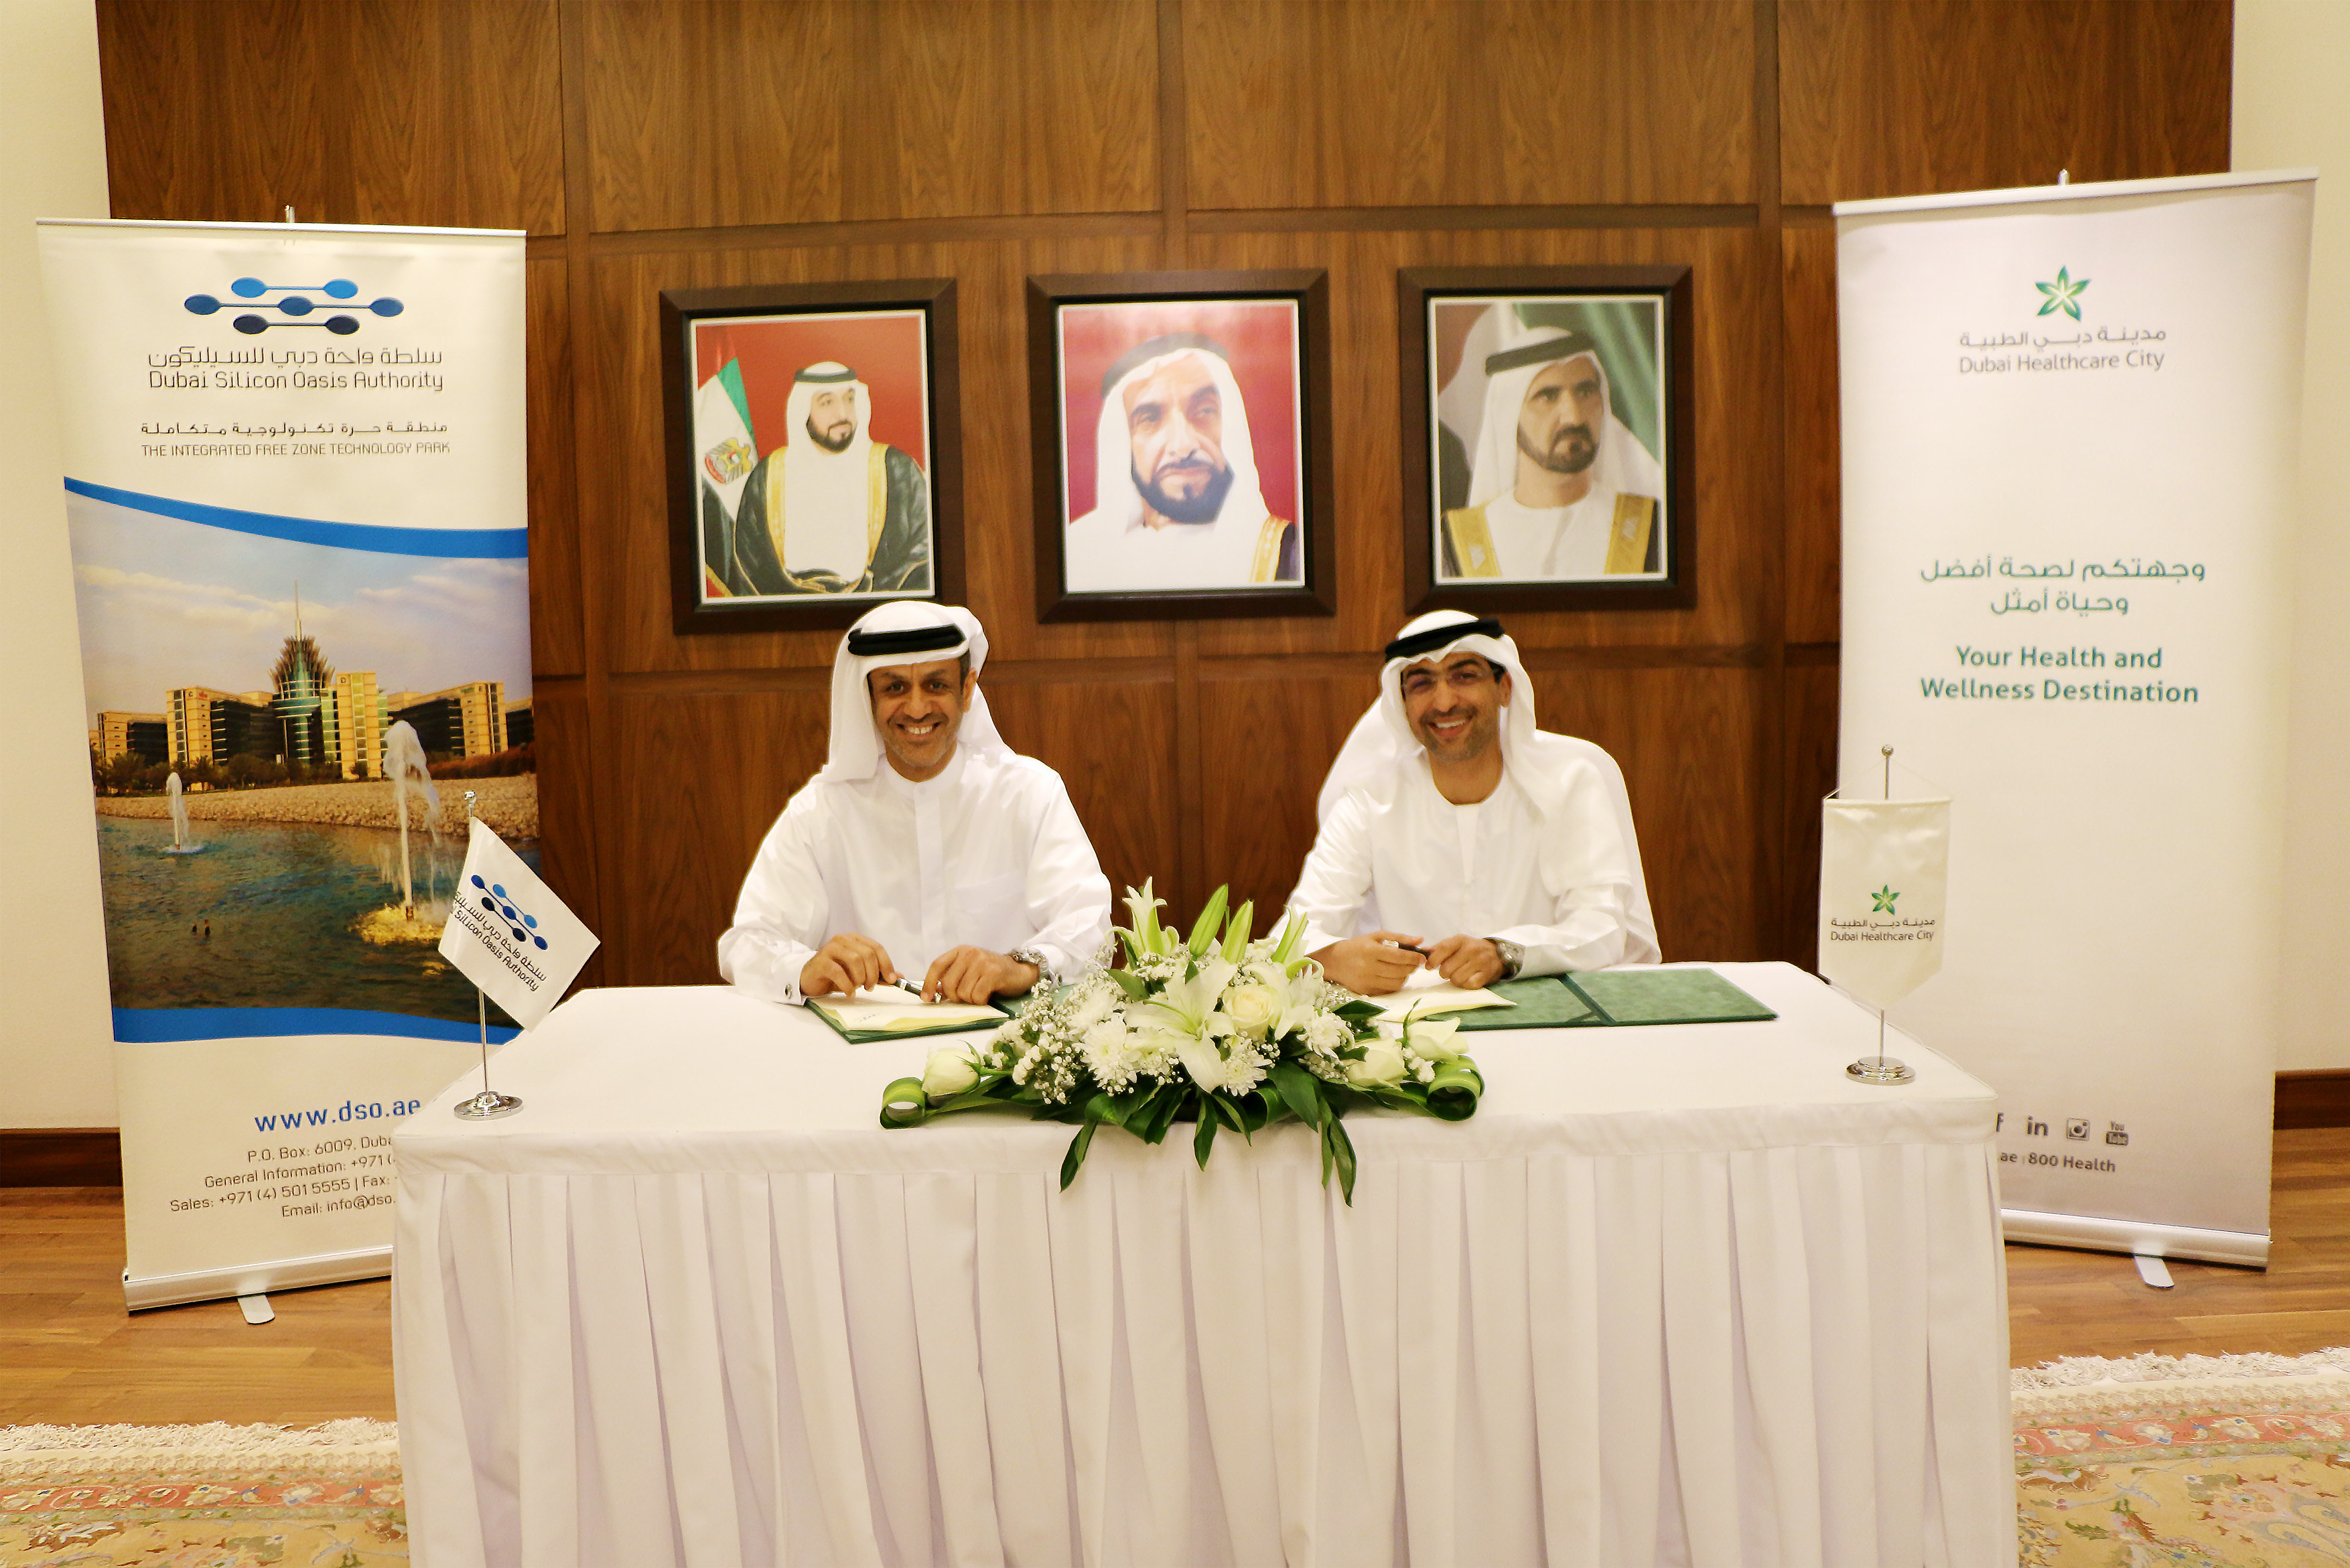 DUBAI HEALTHCARE CITY TO LAUNCH NATIONAL PATIENT SAFETY PLEDGE WITH GLOBAL BODY PATIENT SAFETY MOVEMENT FOUNDATION